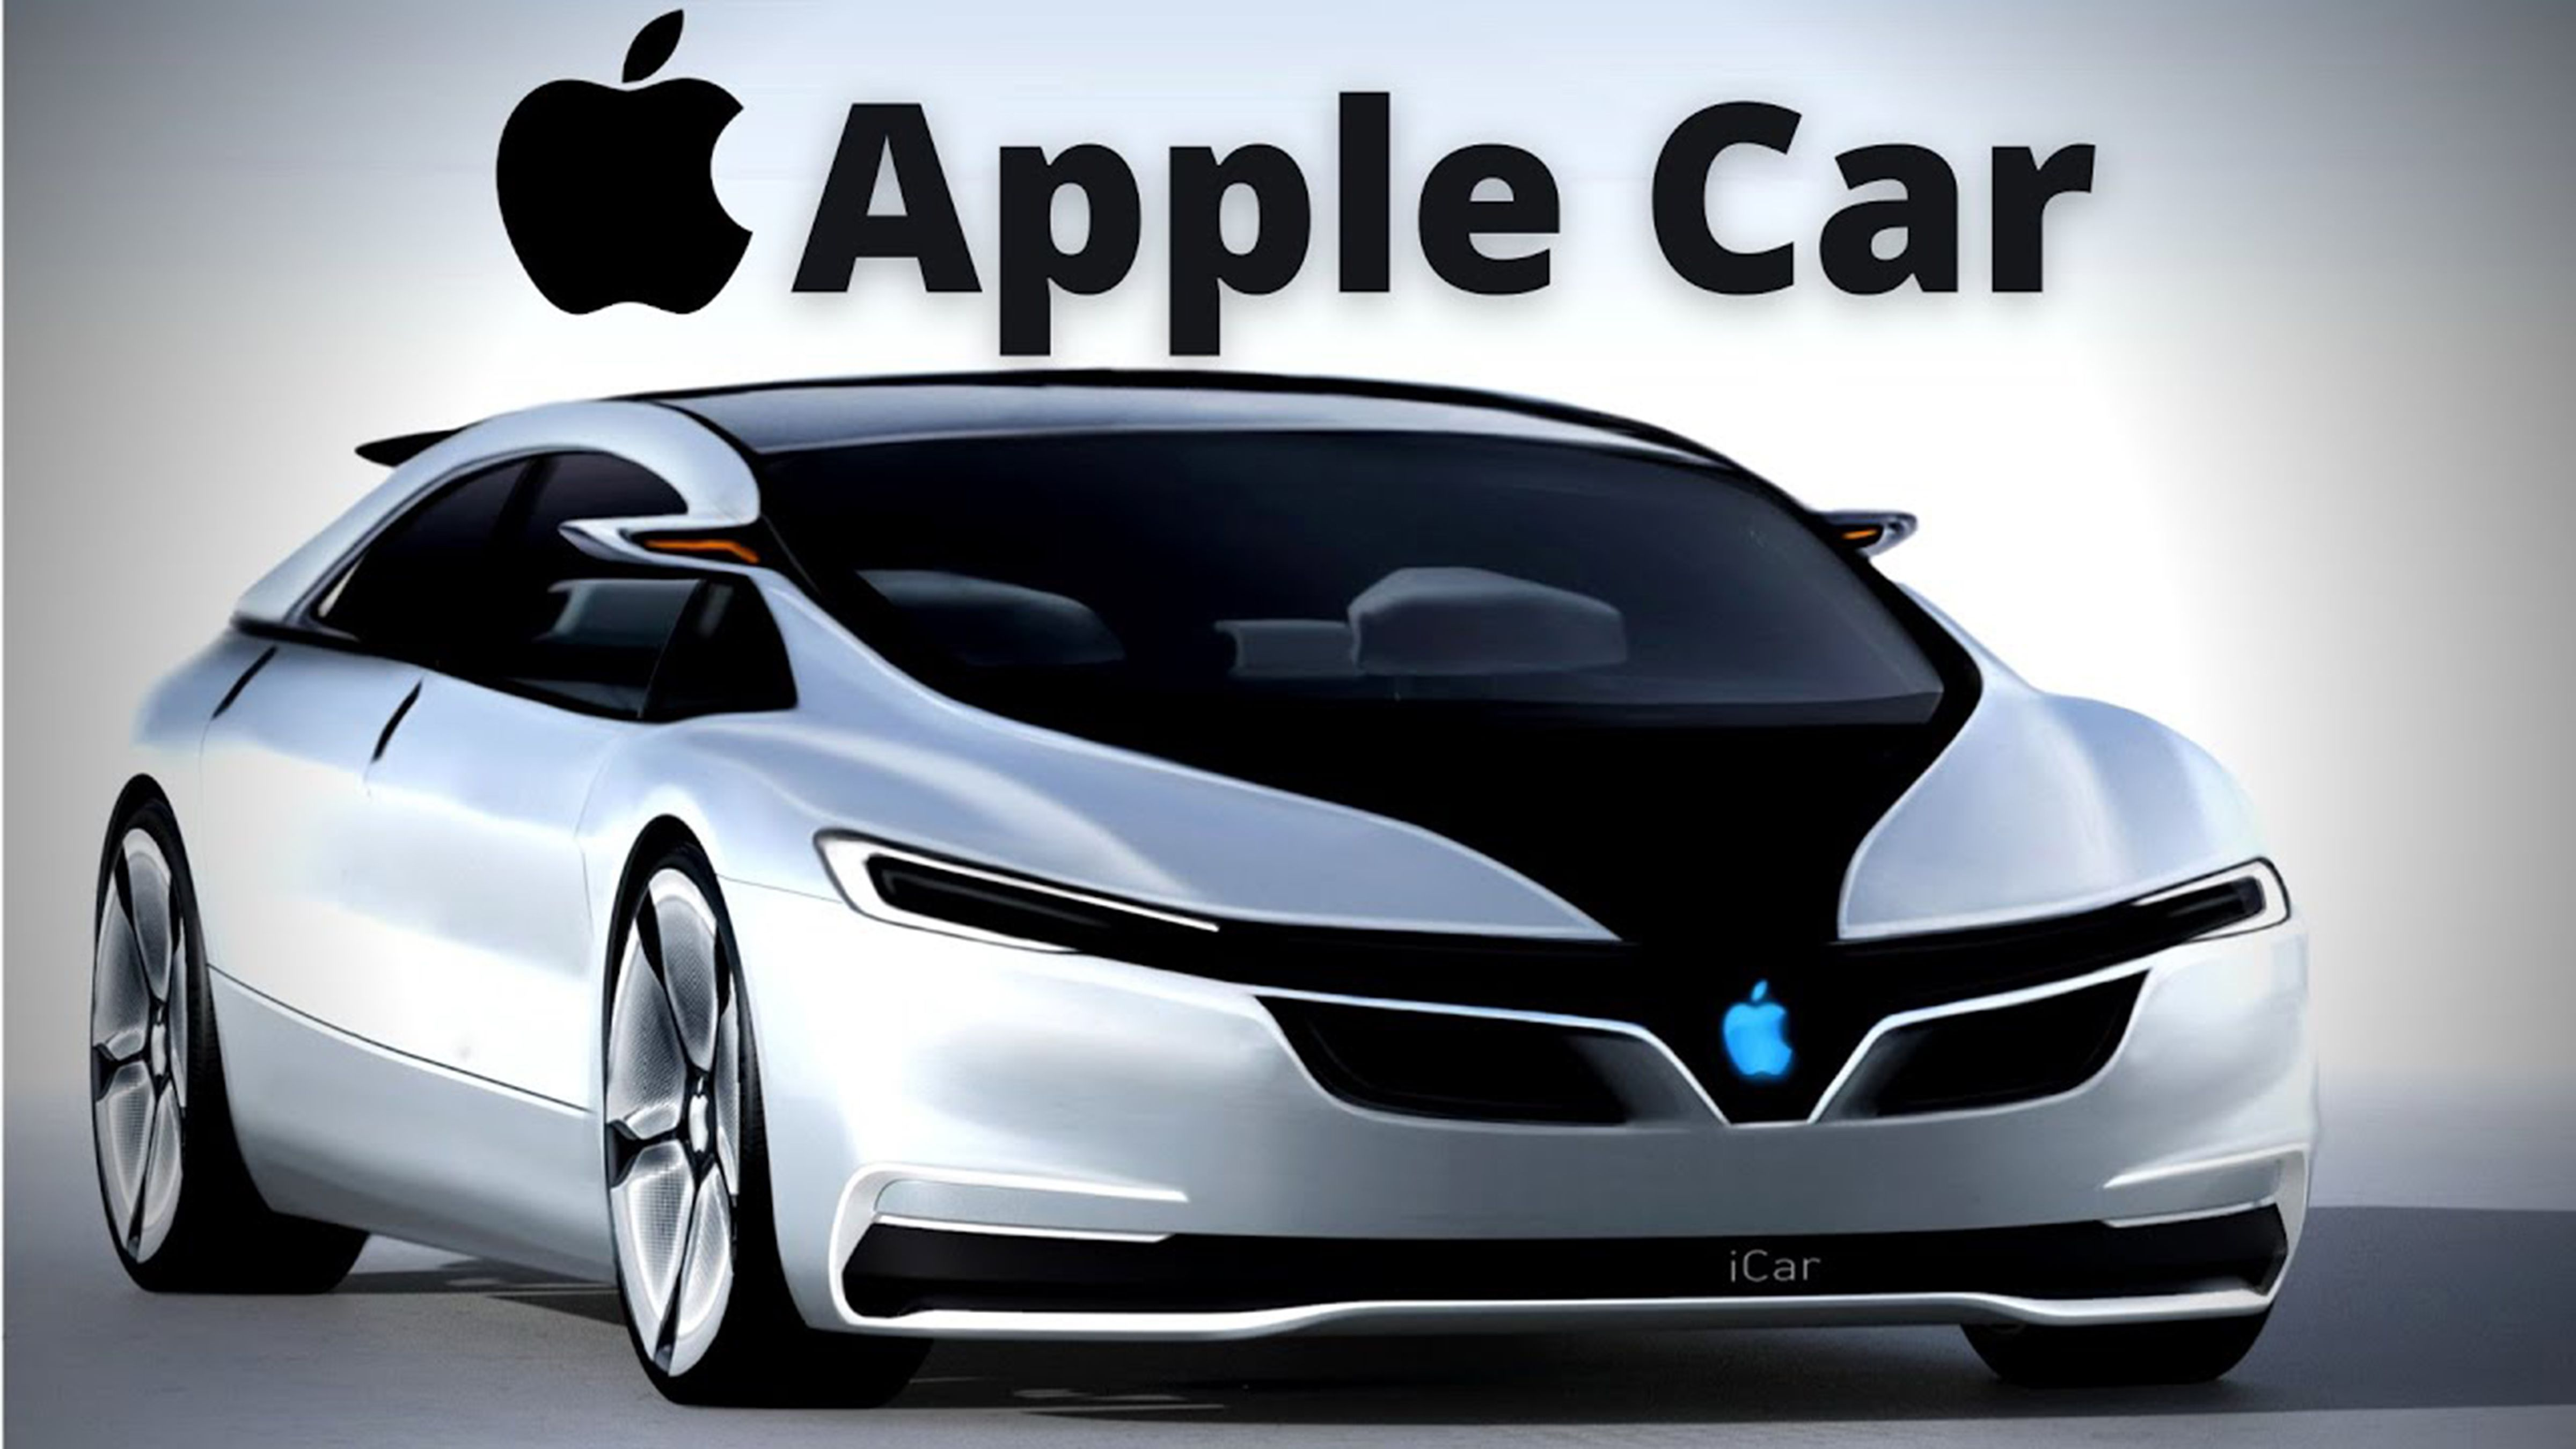 Something to watch out for! Apple's driverless smart car out soon photo from Remax Metron